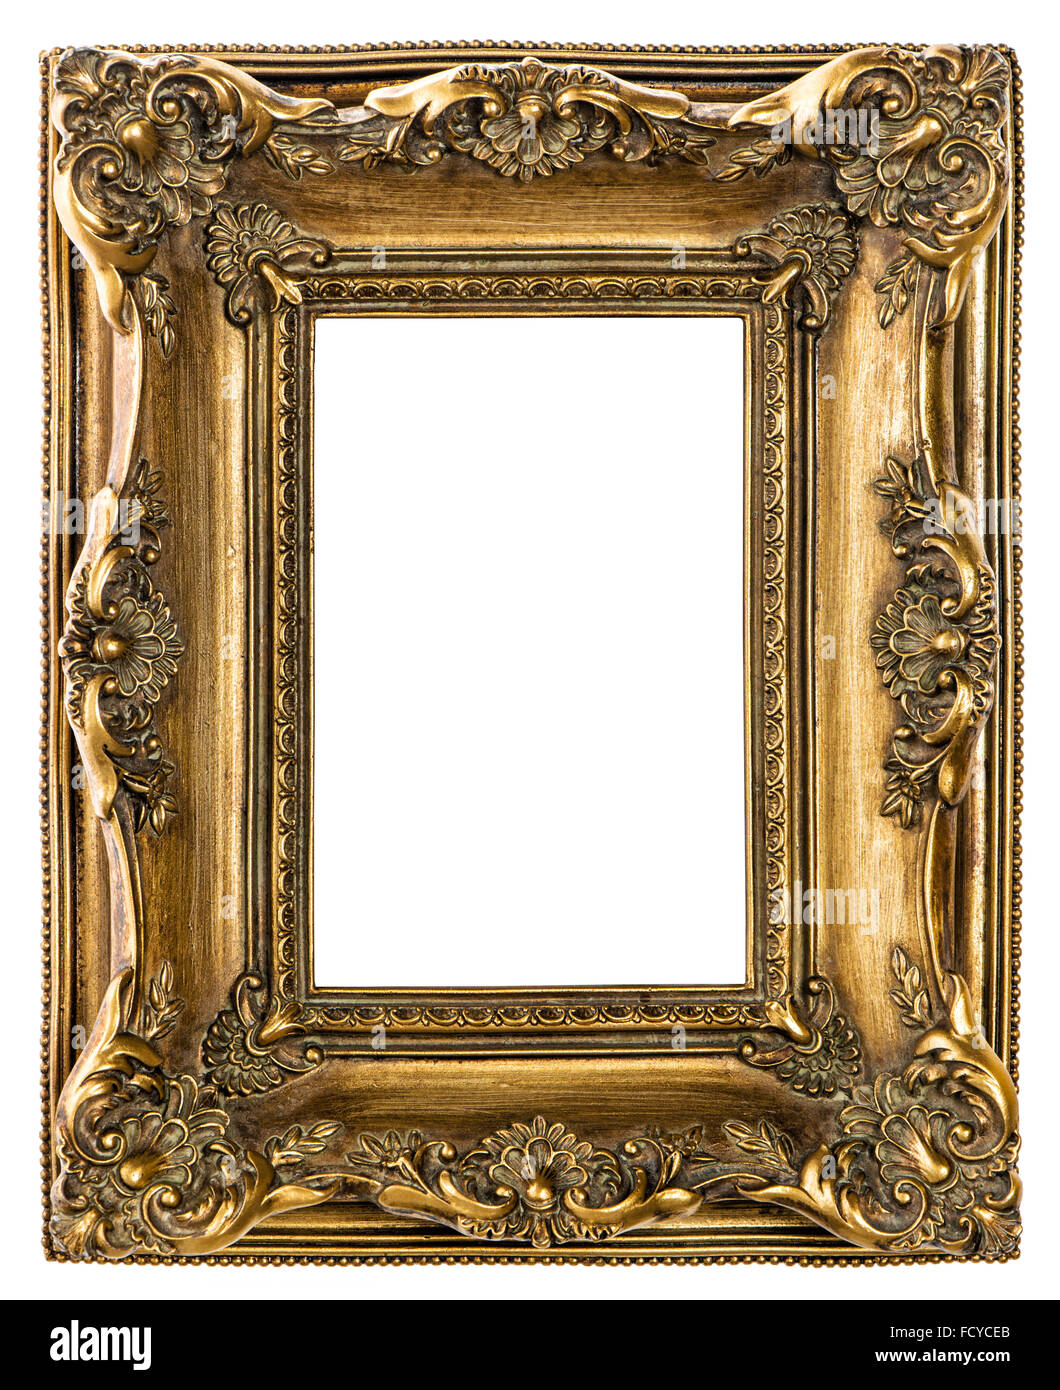 Golden baroque picture frame on white background vintage style golden baroque picture frame on white background vintage style object jeuxipadfo Gallery